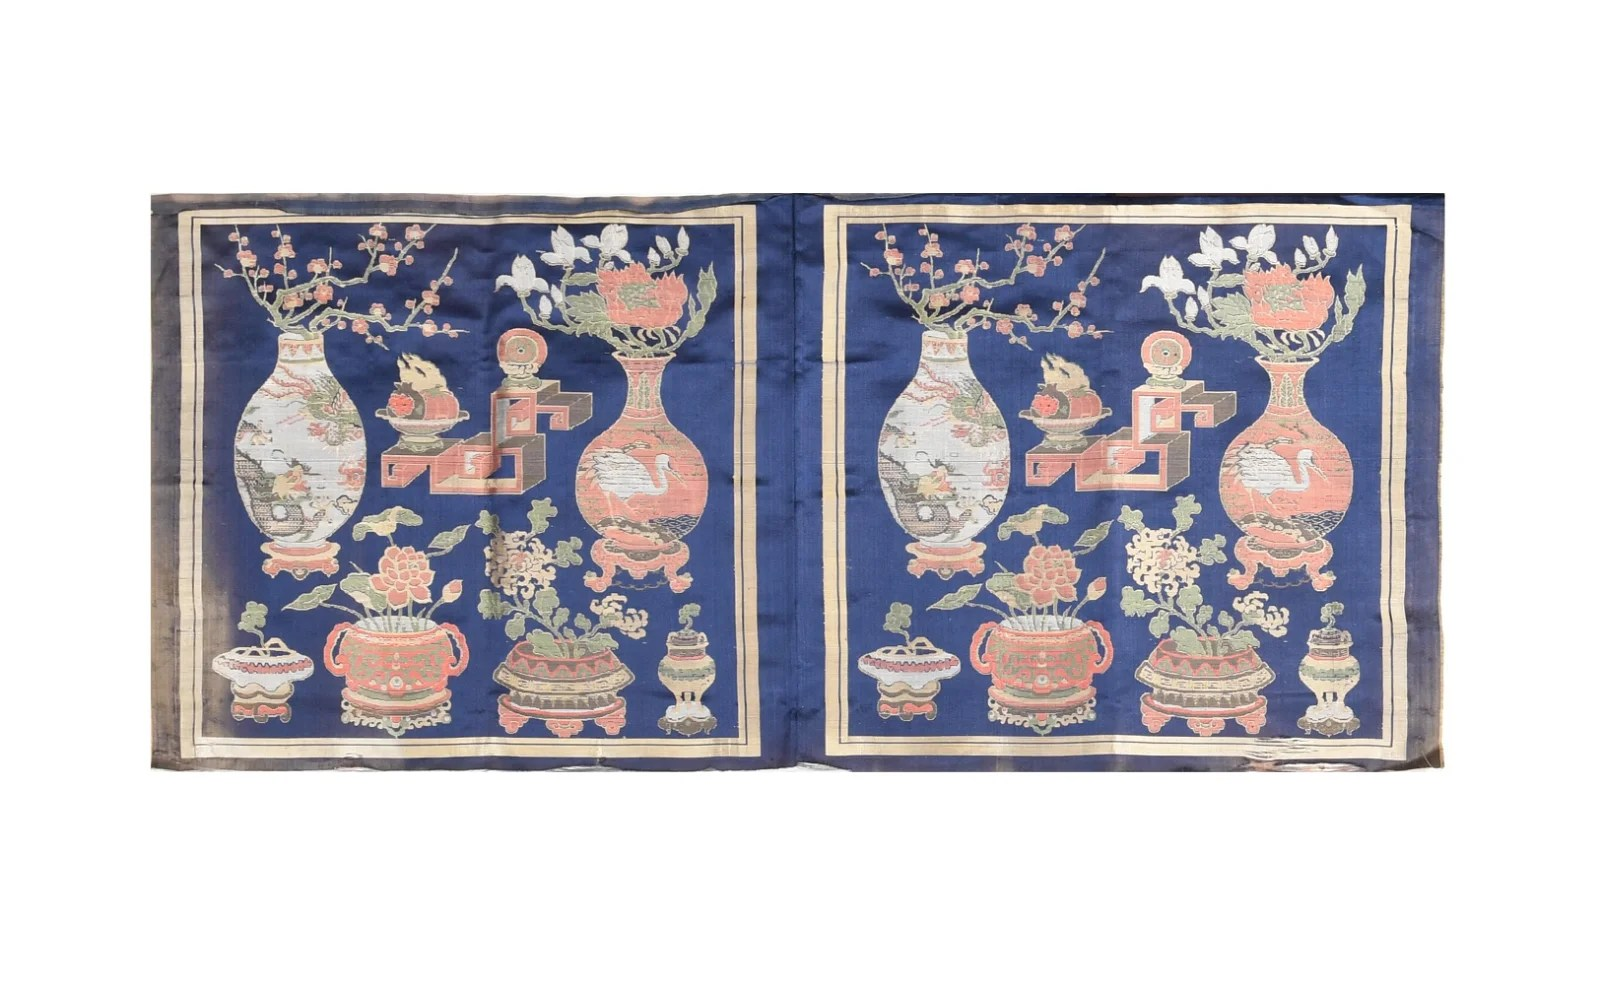 Chinese Embroidery of the Hundred Antiques, 19th